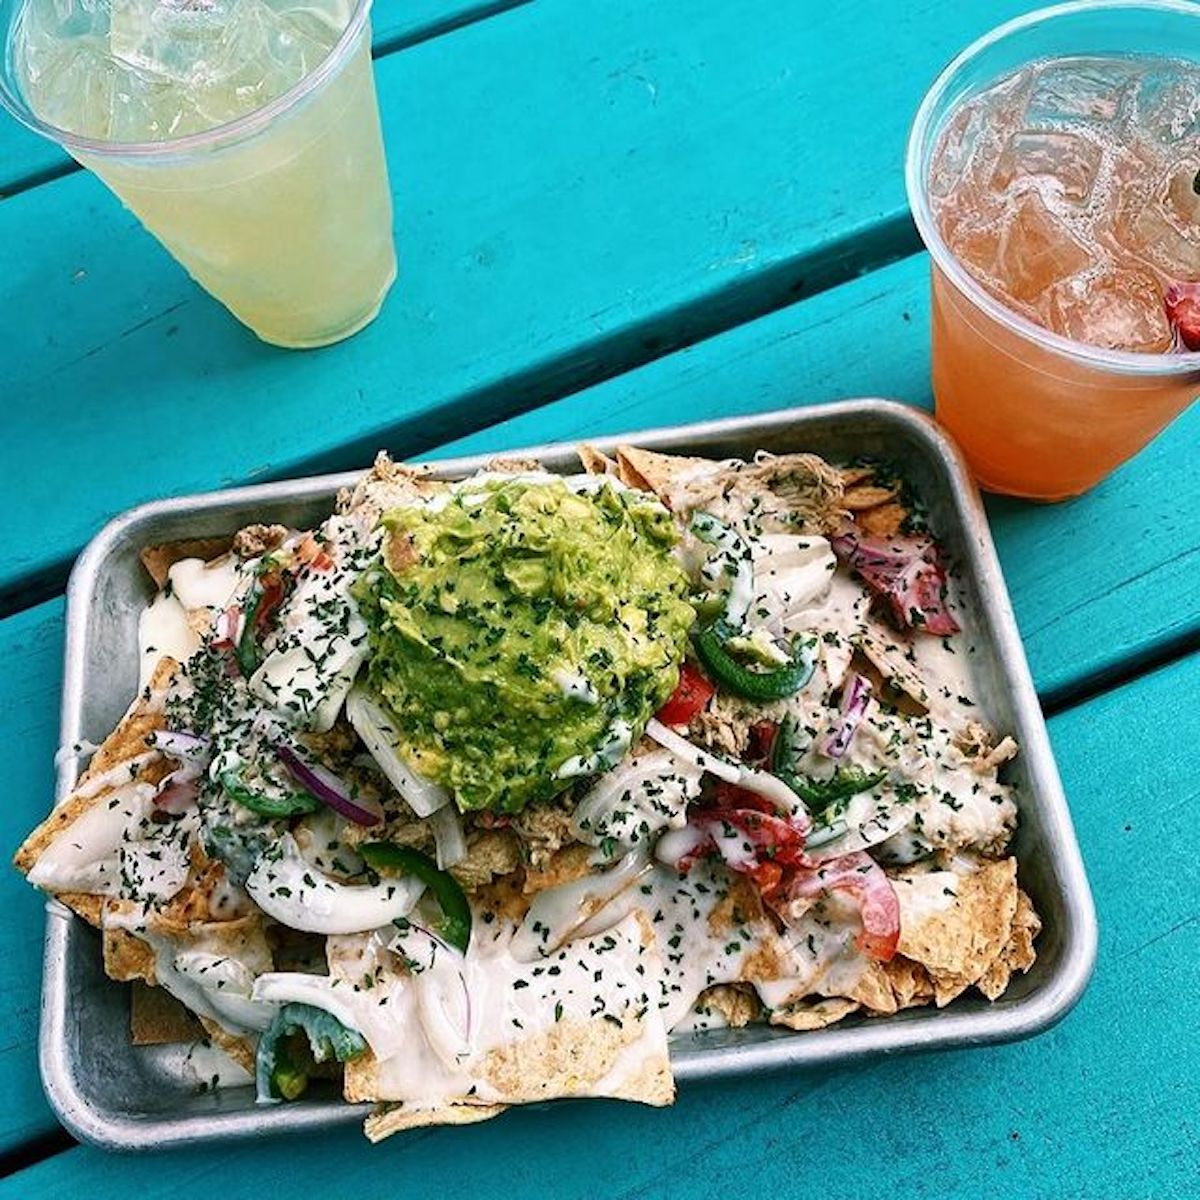 Guac Y Margys is Opening a Second Location